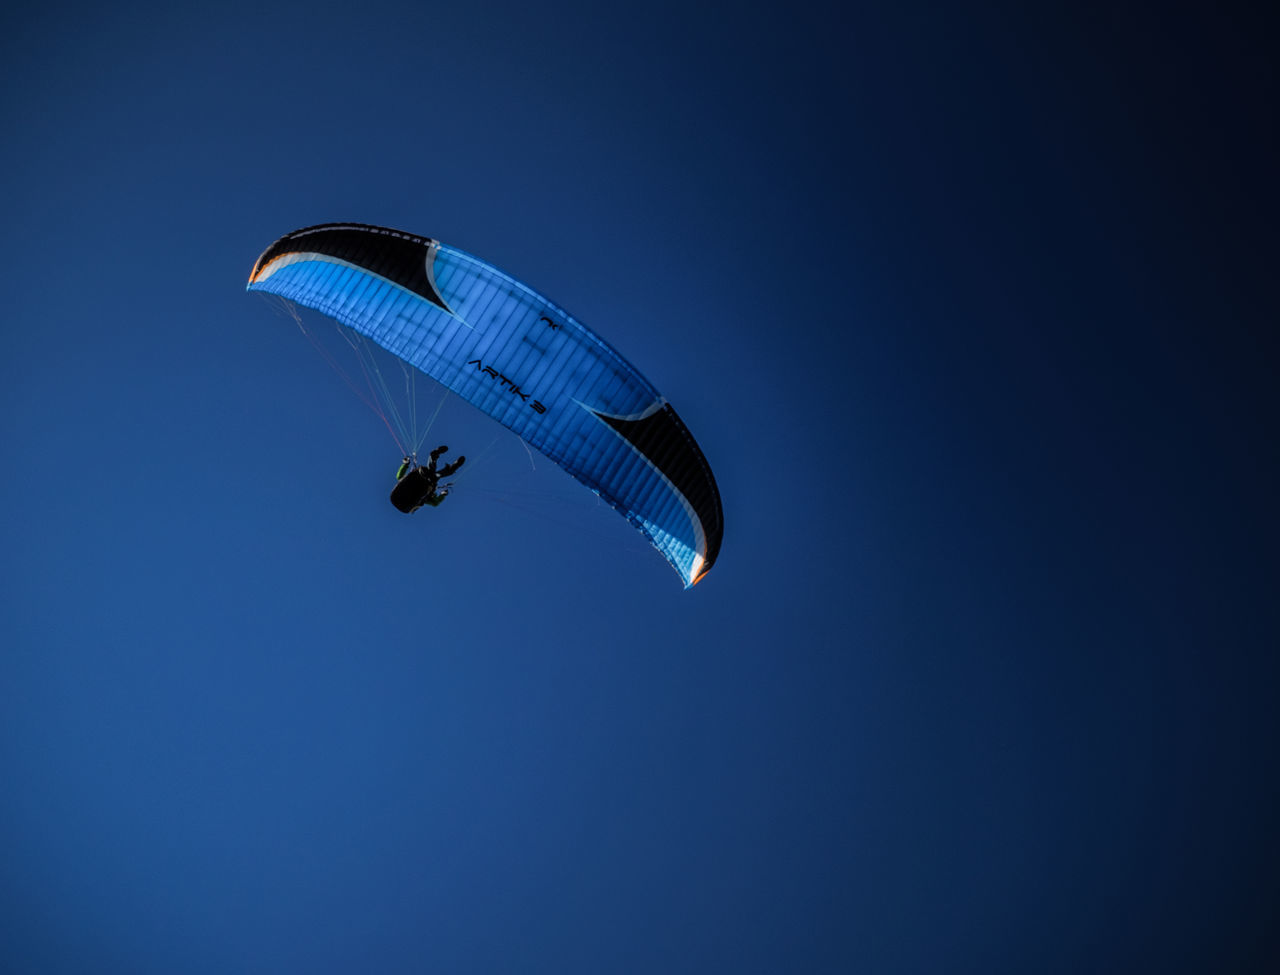 Into the Blue again Adventure Blue Carefree Clear Sky Dark Exhilaration Extreme Sports Flying Gliding Leisure Activity Lifestyles Low Angle View Mid-air Nature Parachute Paragliding Skydiving